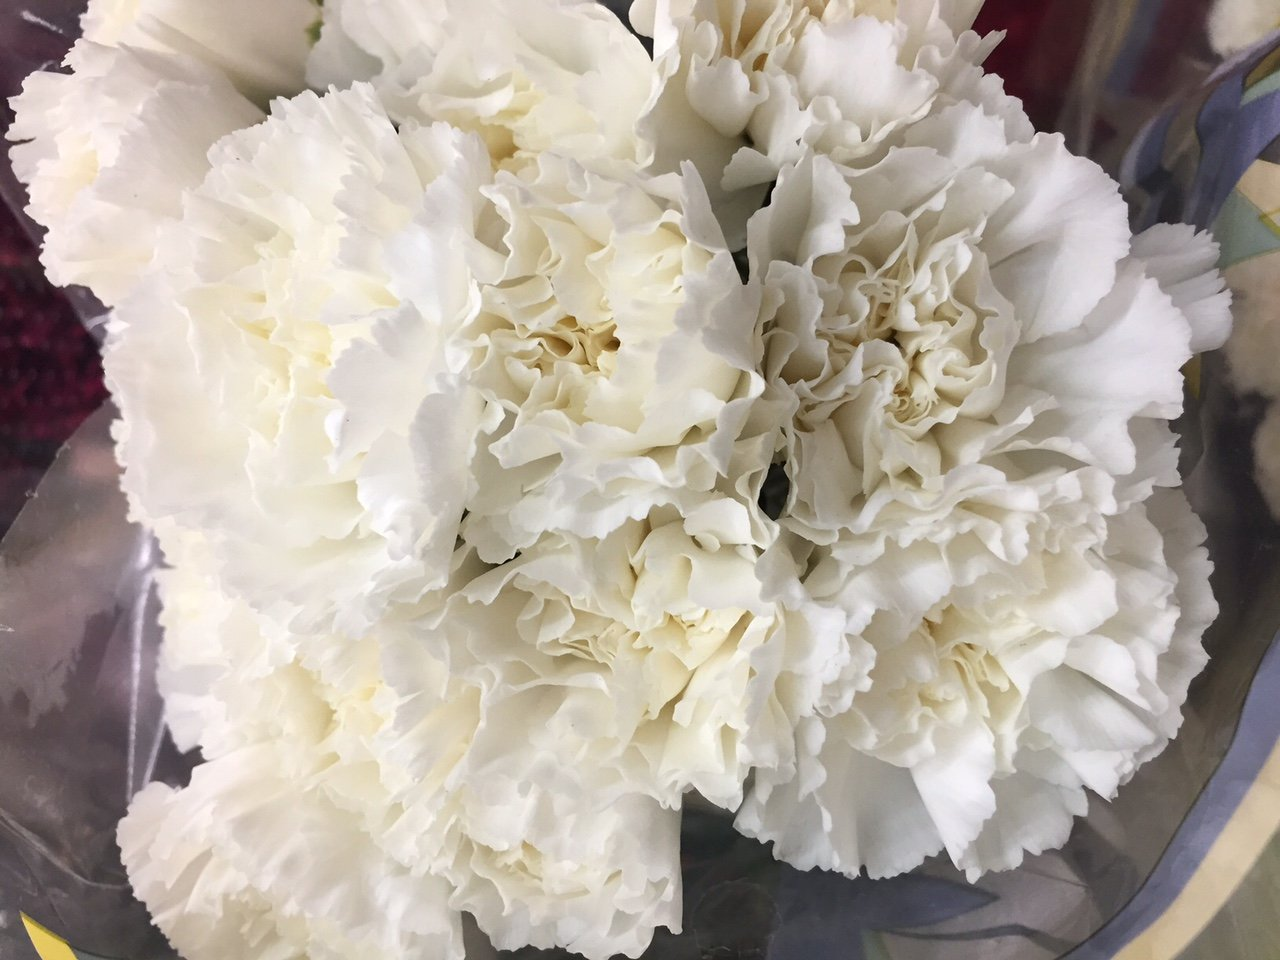 Amazon Cut Flowers White Carnation Garden Outdoor